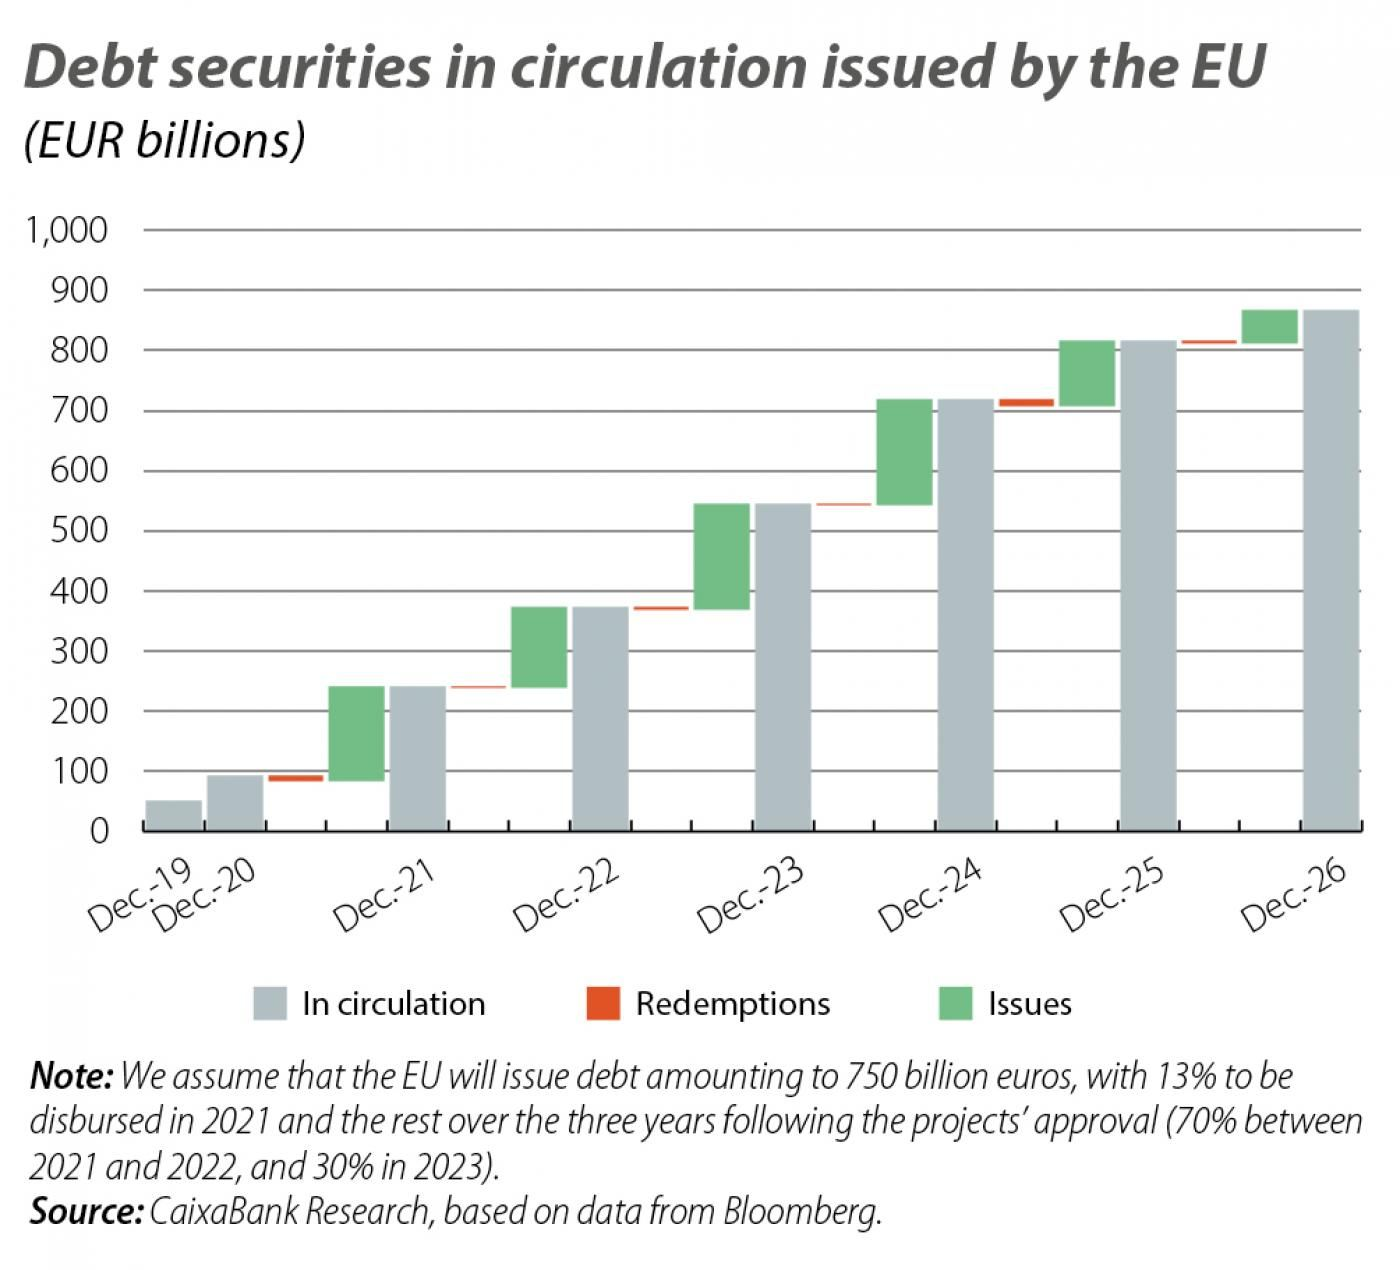 Debt securities in circulation issued by the EU